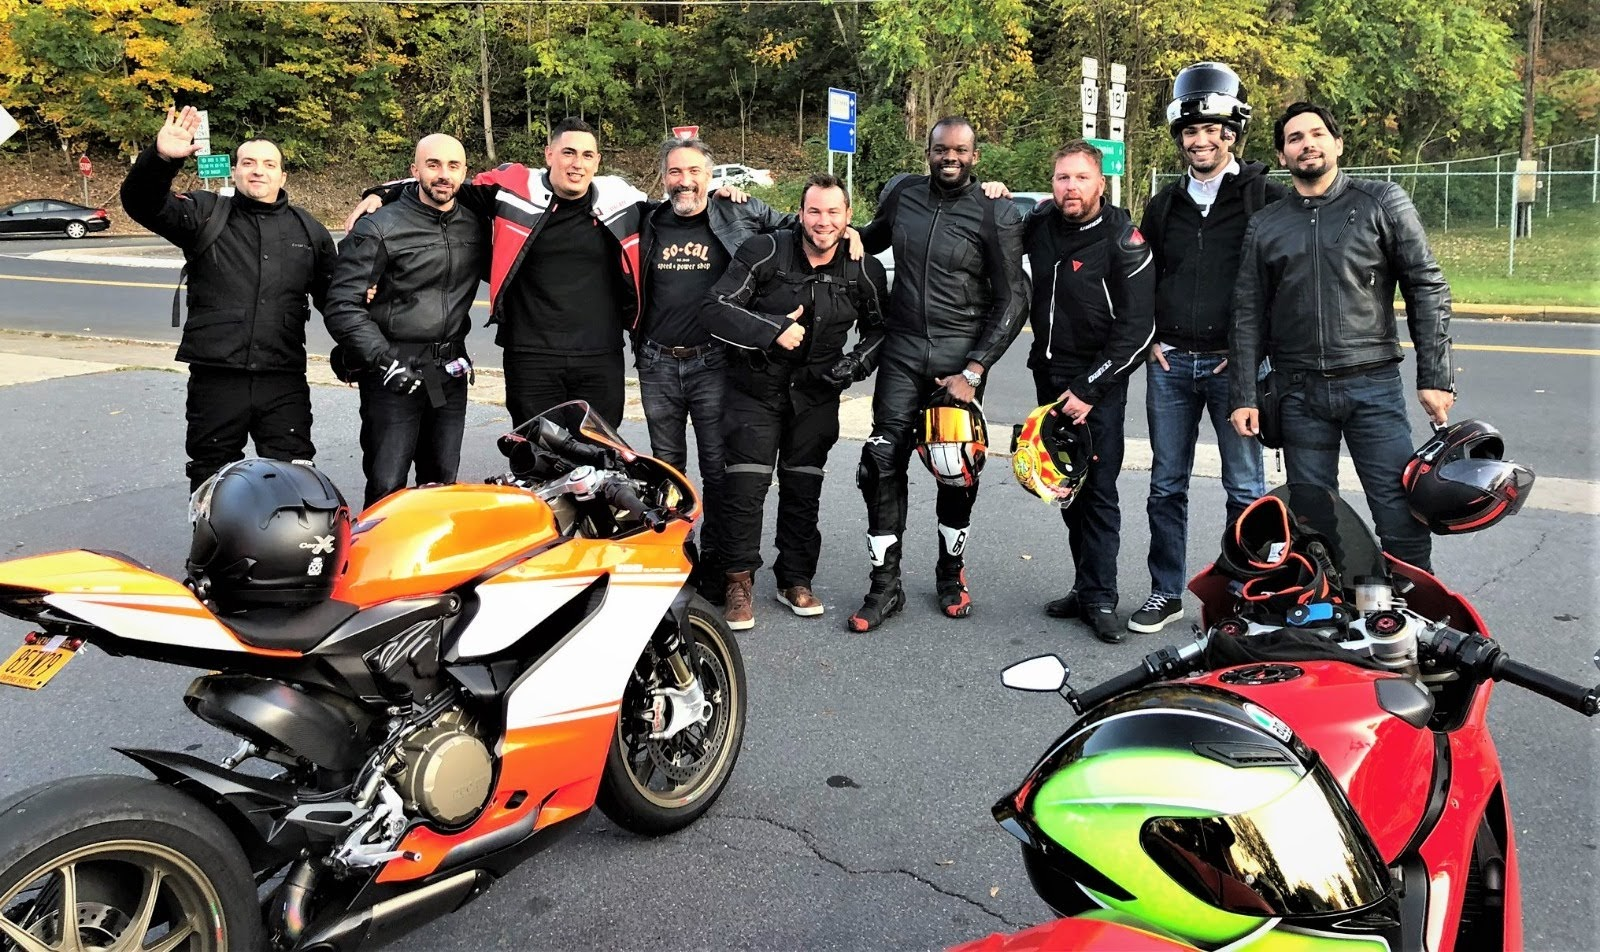 Gotham Ducati Desmo Owners Club motorcycle ride to Port Jervis New York